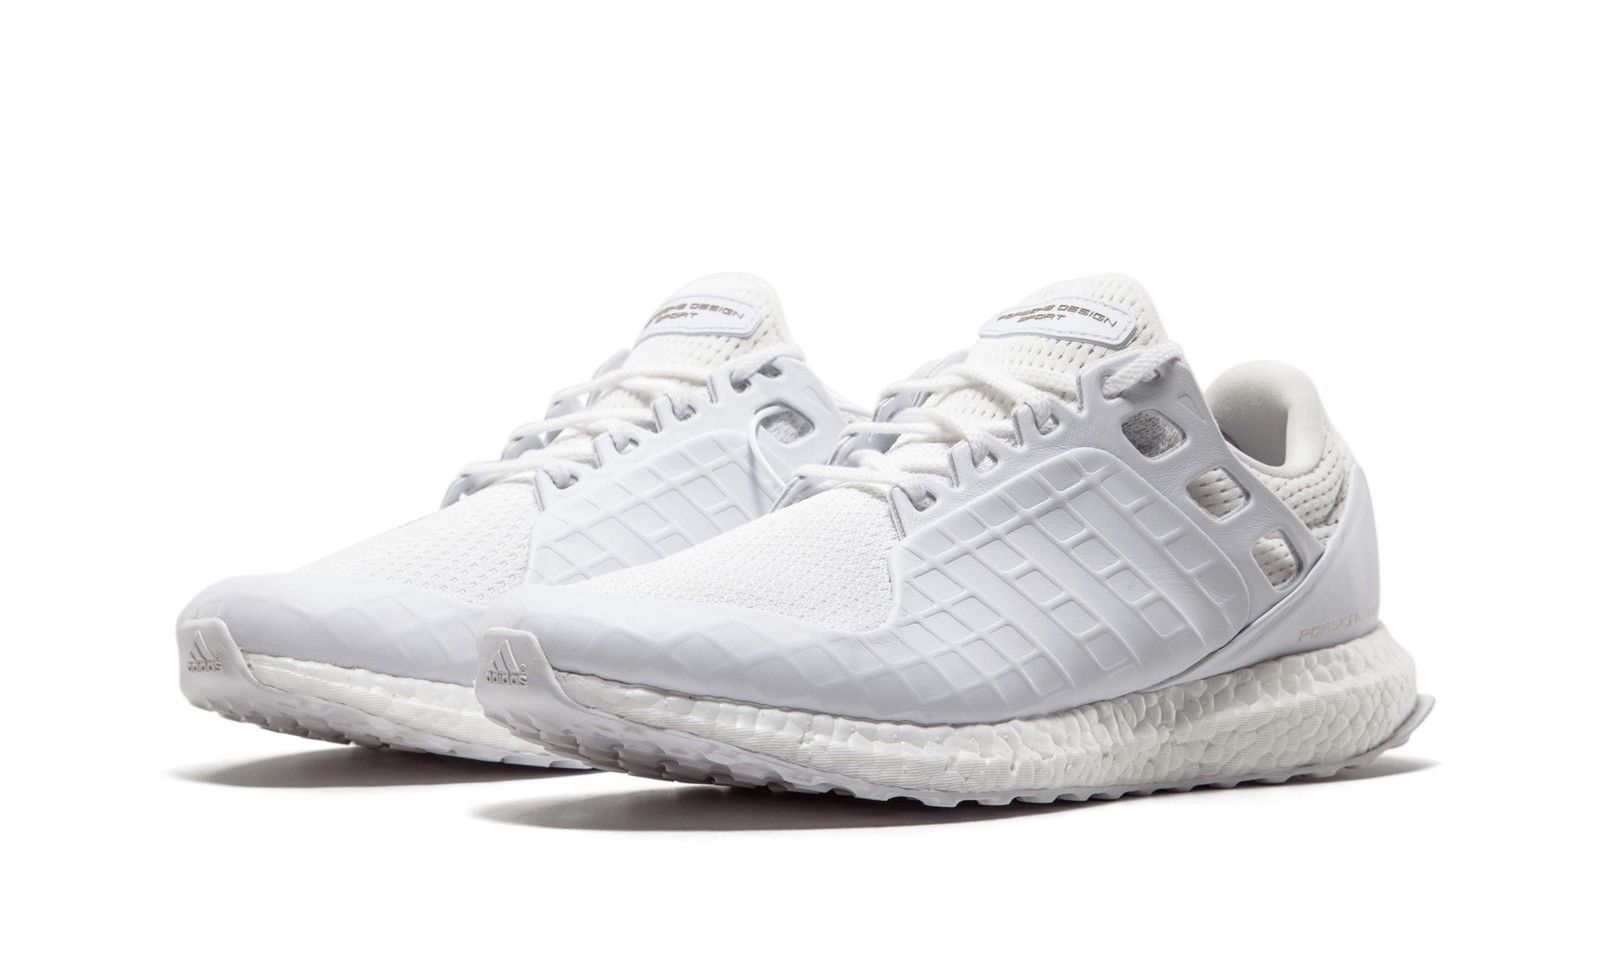 Adidas PDS Ultra Boost Trainer